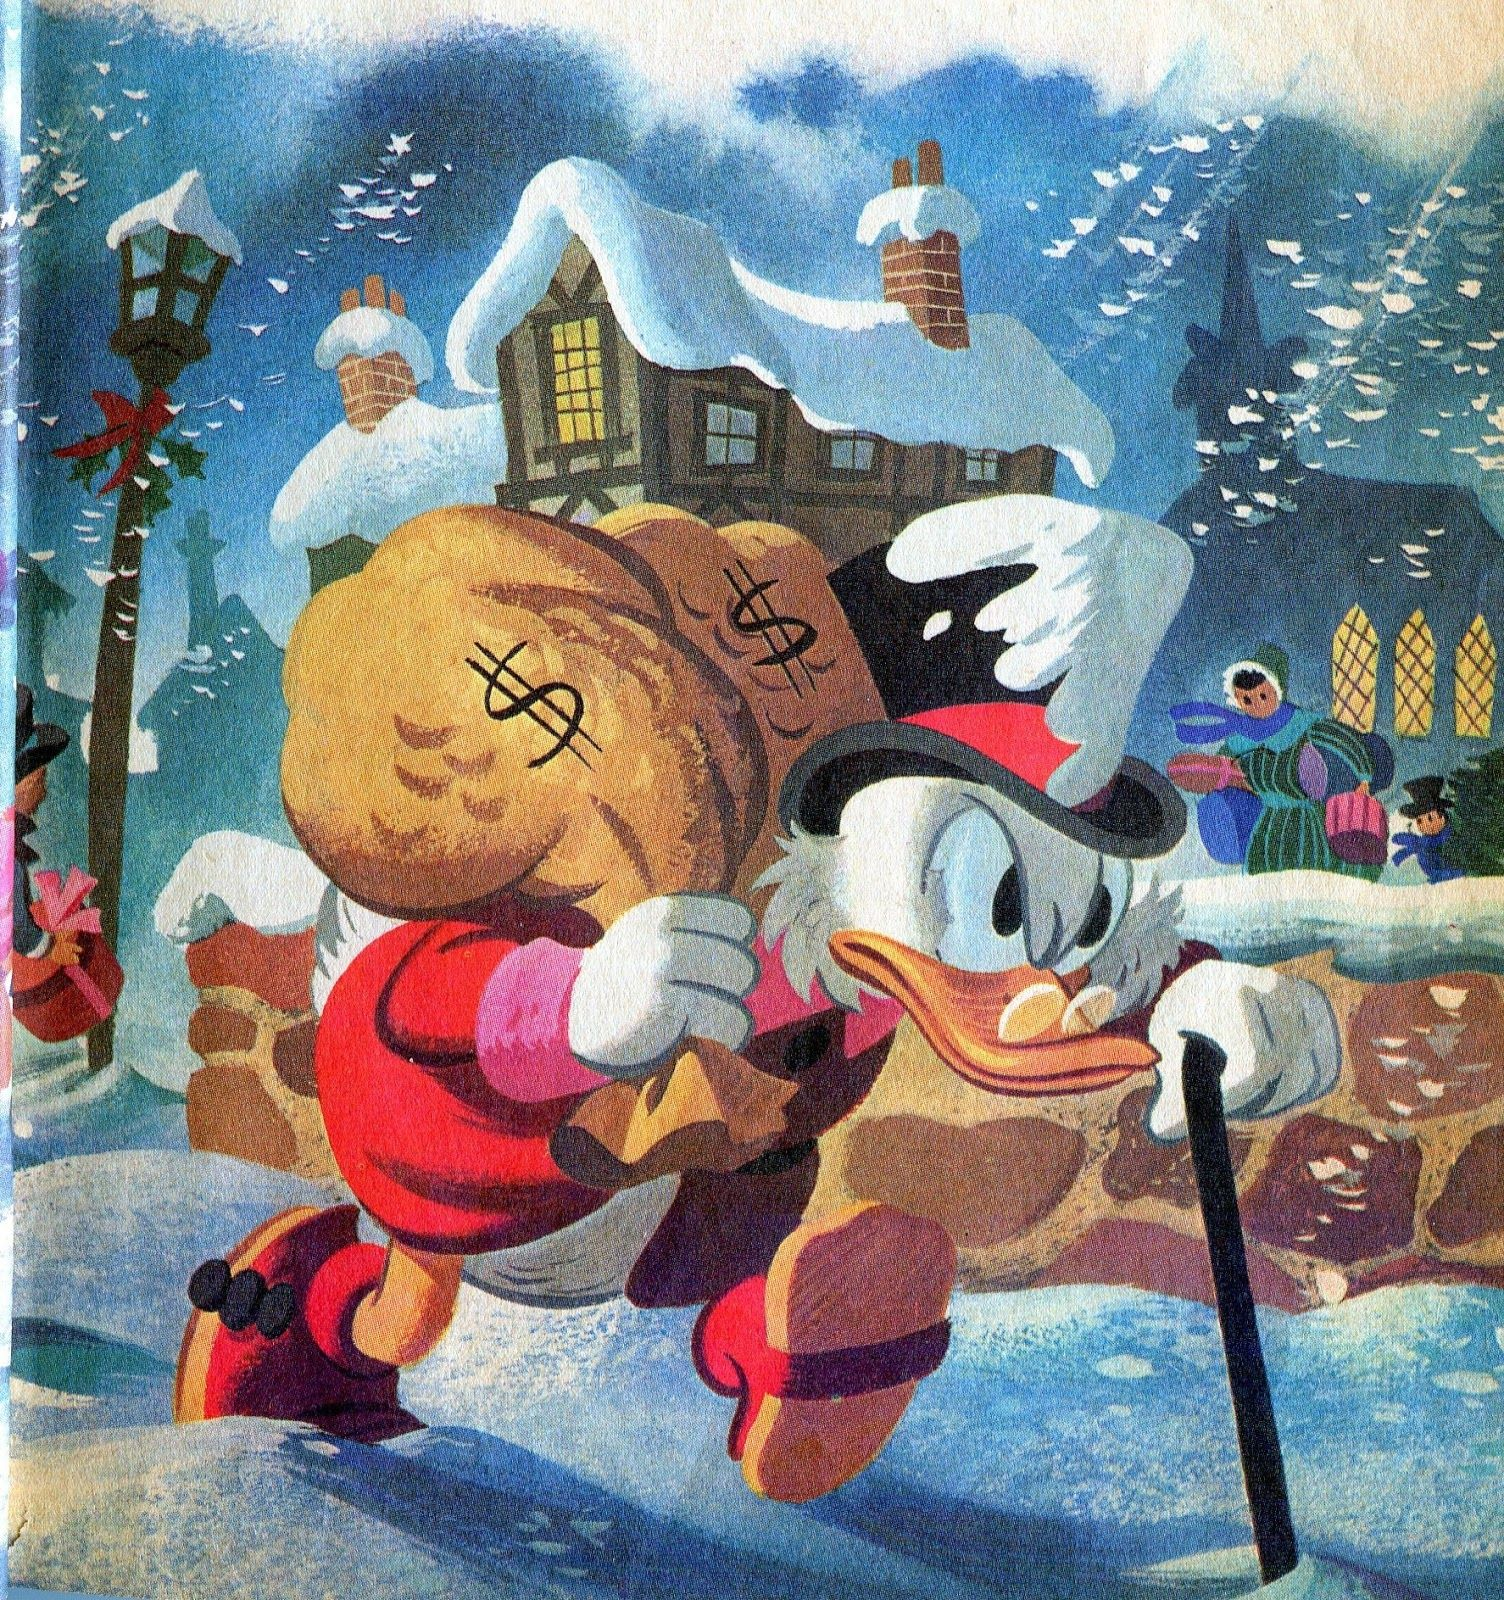 Christmas Carol Scrooge Mcduck.Scrooge Mcduck From The Little Golden Book Donald Duck And